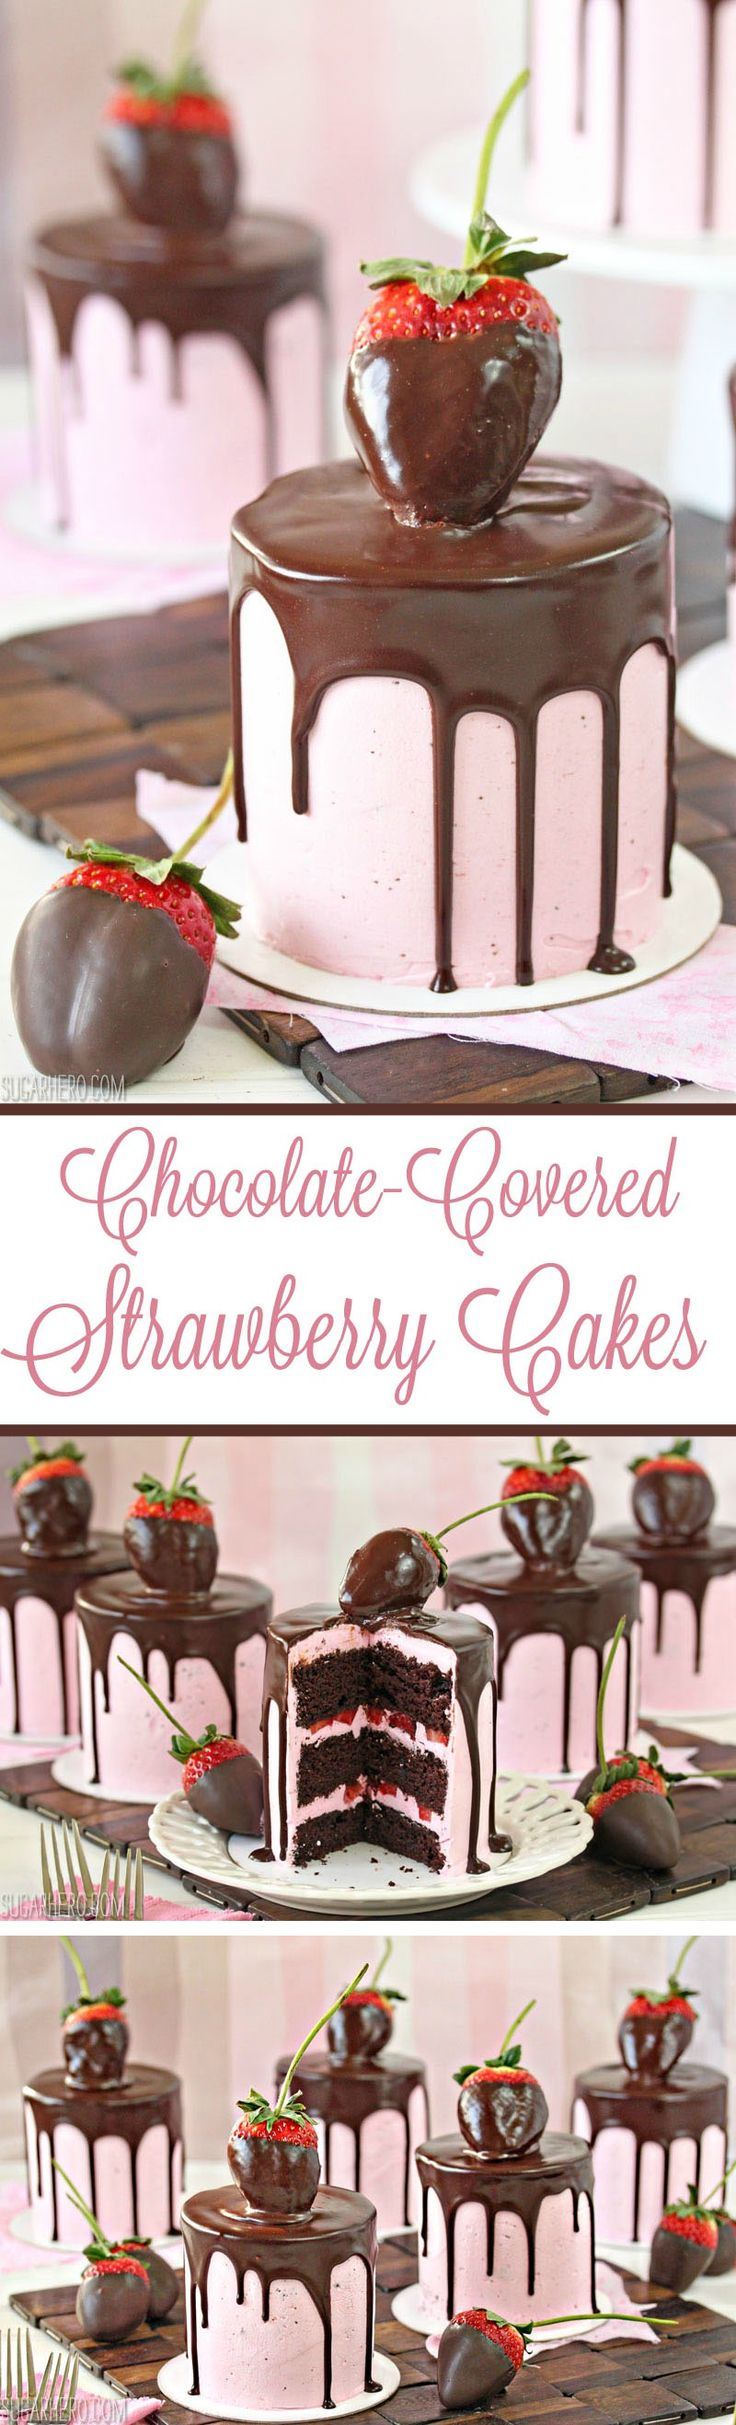 Chocolate-Covered Strawberry Cakes, with chocolate cake and fresh strawberry buttercream! | From SugarHero.com                                                                                                                                                      More